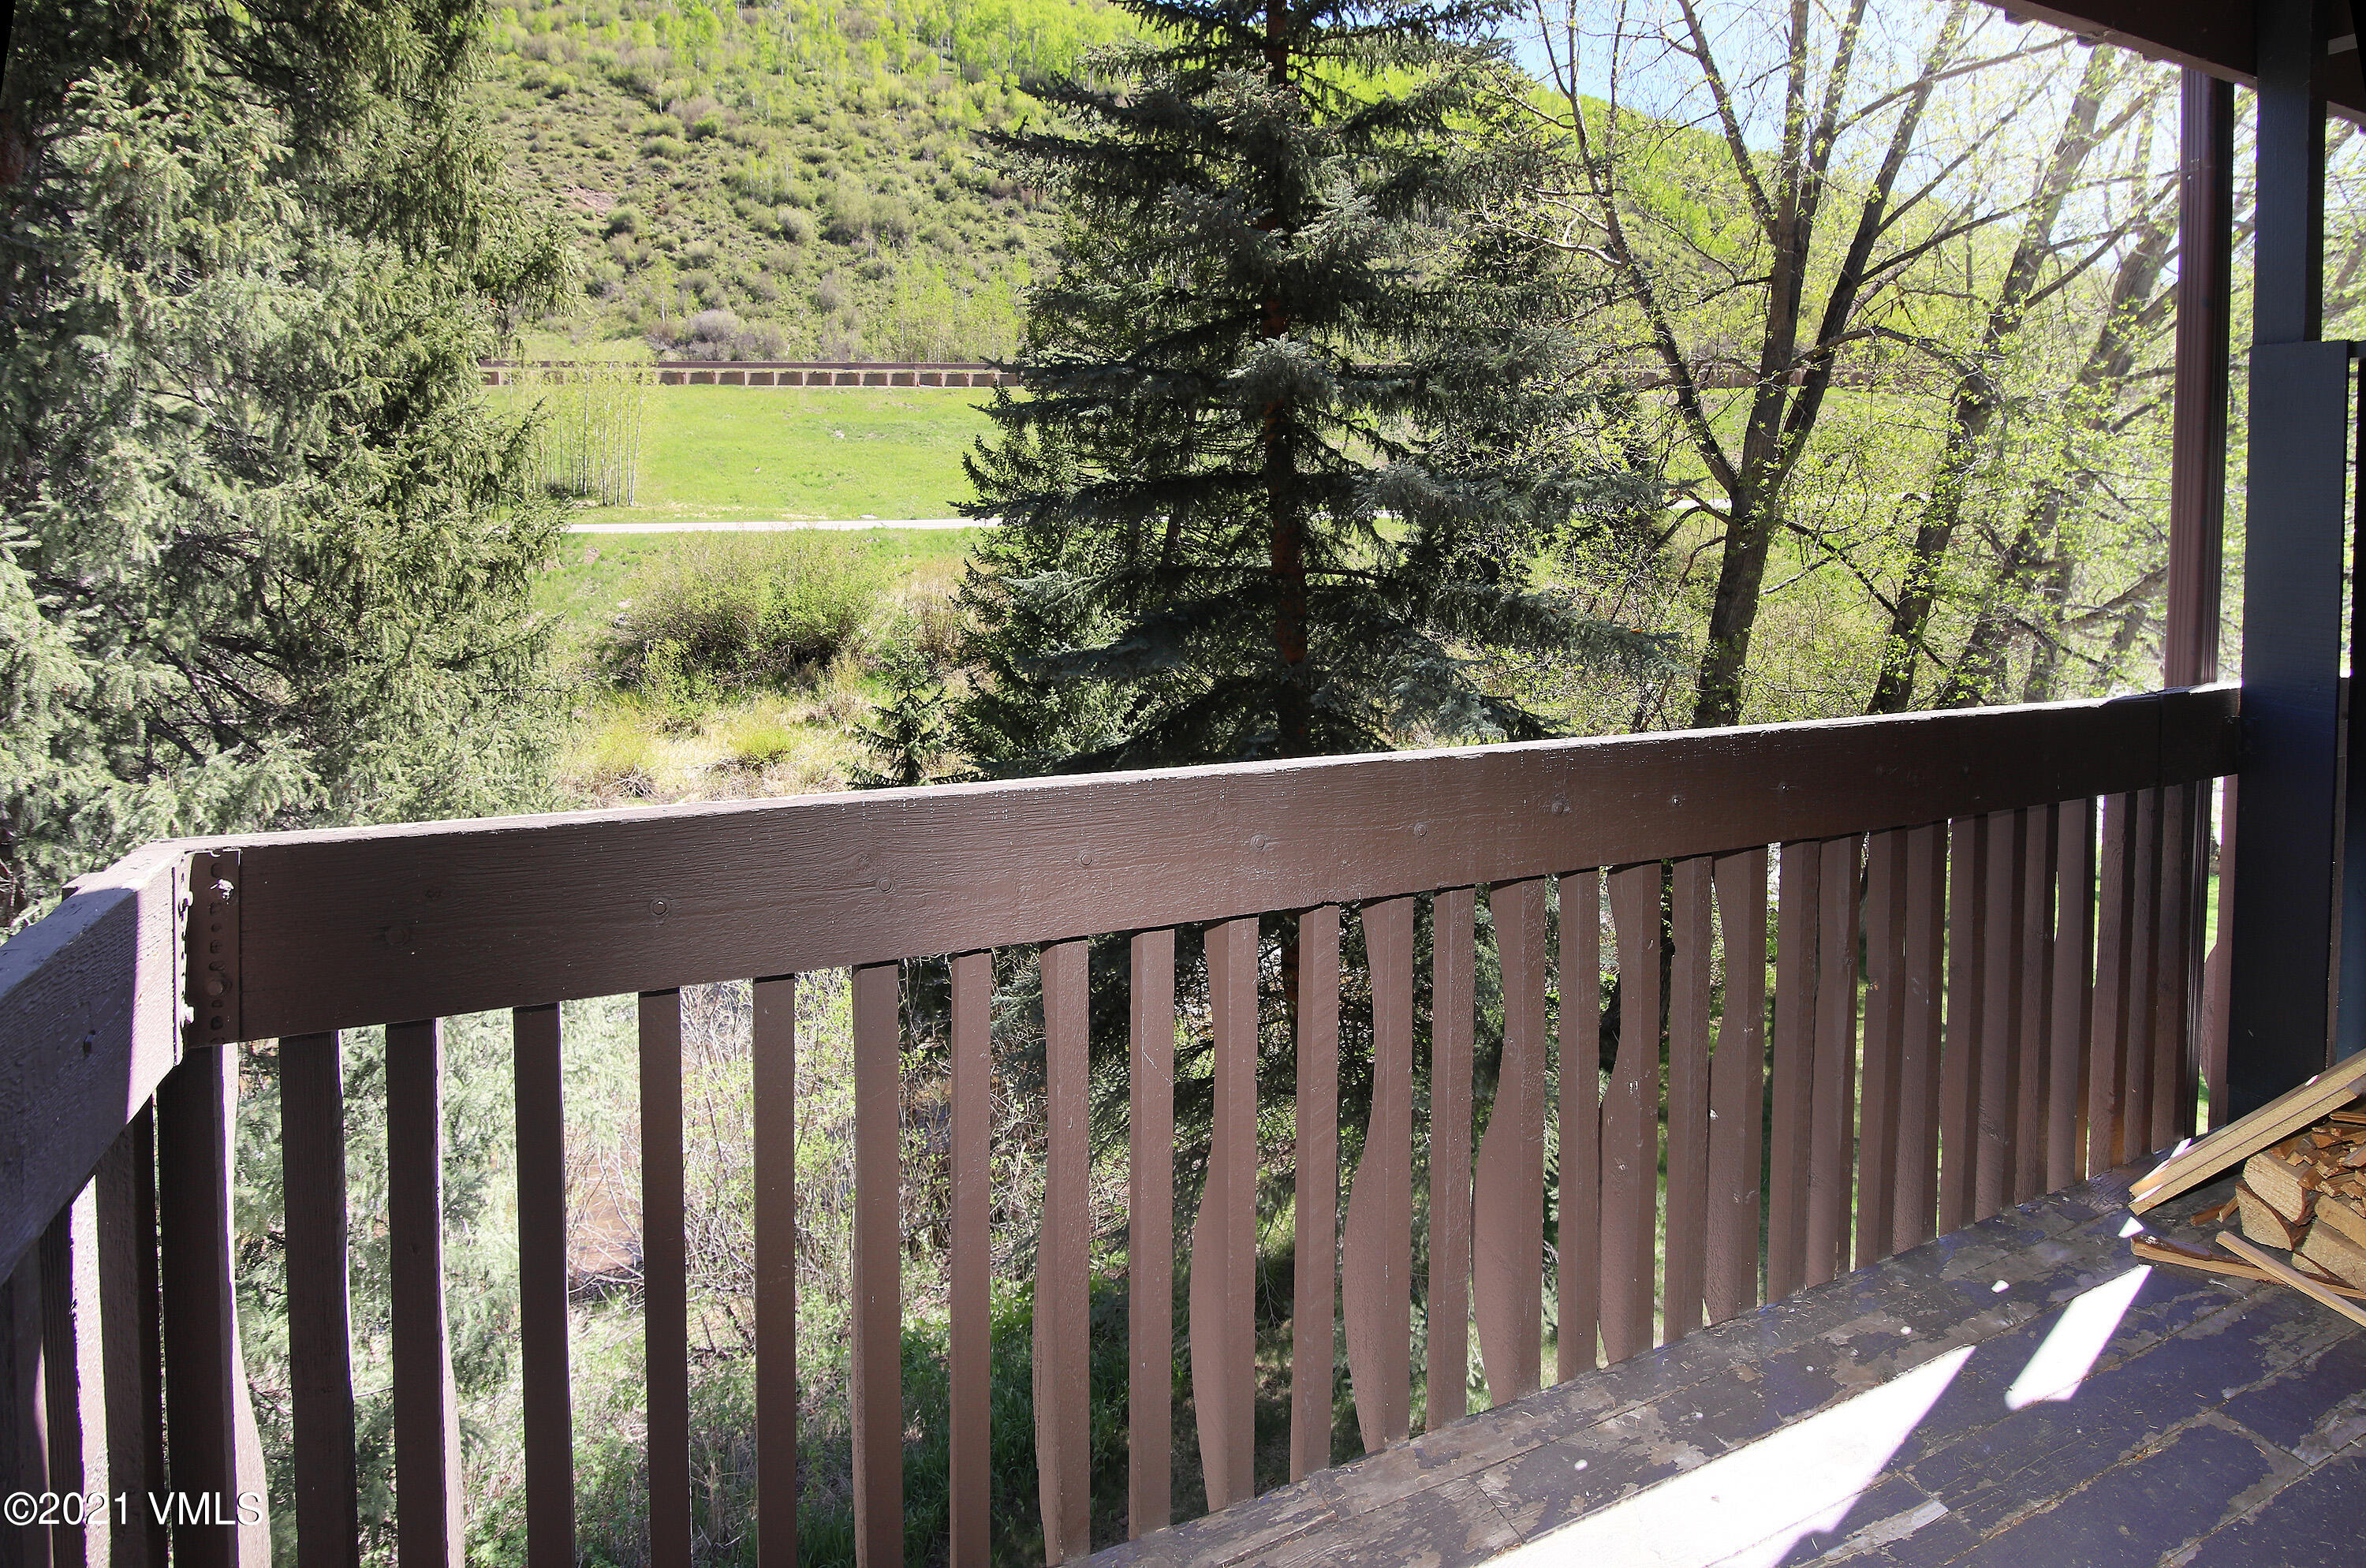 Freshly painted 1-bedroom and 1.5-bath Vail Racquet Club condominium with ample closet space and two decks. One deck faces Gore Creek and other deck has excellent mountain views. New gas fireplace is currently being installed.  On-site property management, Town of Vail free bus, year-round heated outdoor 25 meter swimming pool, hot tubs, tennis courts, health club and restaurant.